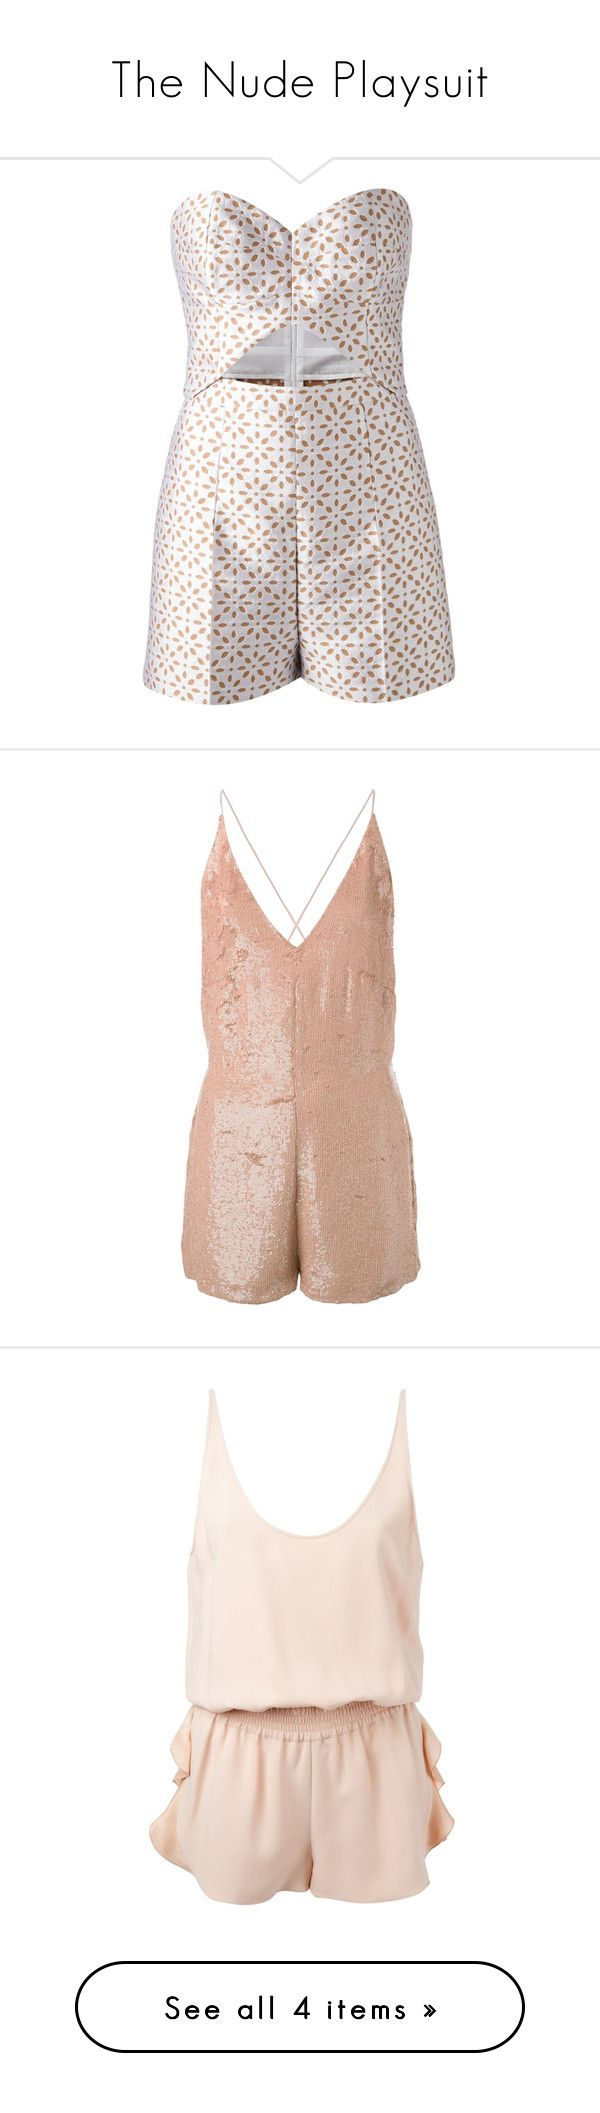 """""""The Nude Playsuit"""" by farfetch ❤ liked on Polyvore featuring jumpsuits, rompers, playsuits, dresses, romper, white, playsuit jumpsuit, michael kors, jump suit and playsuit romper"""